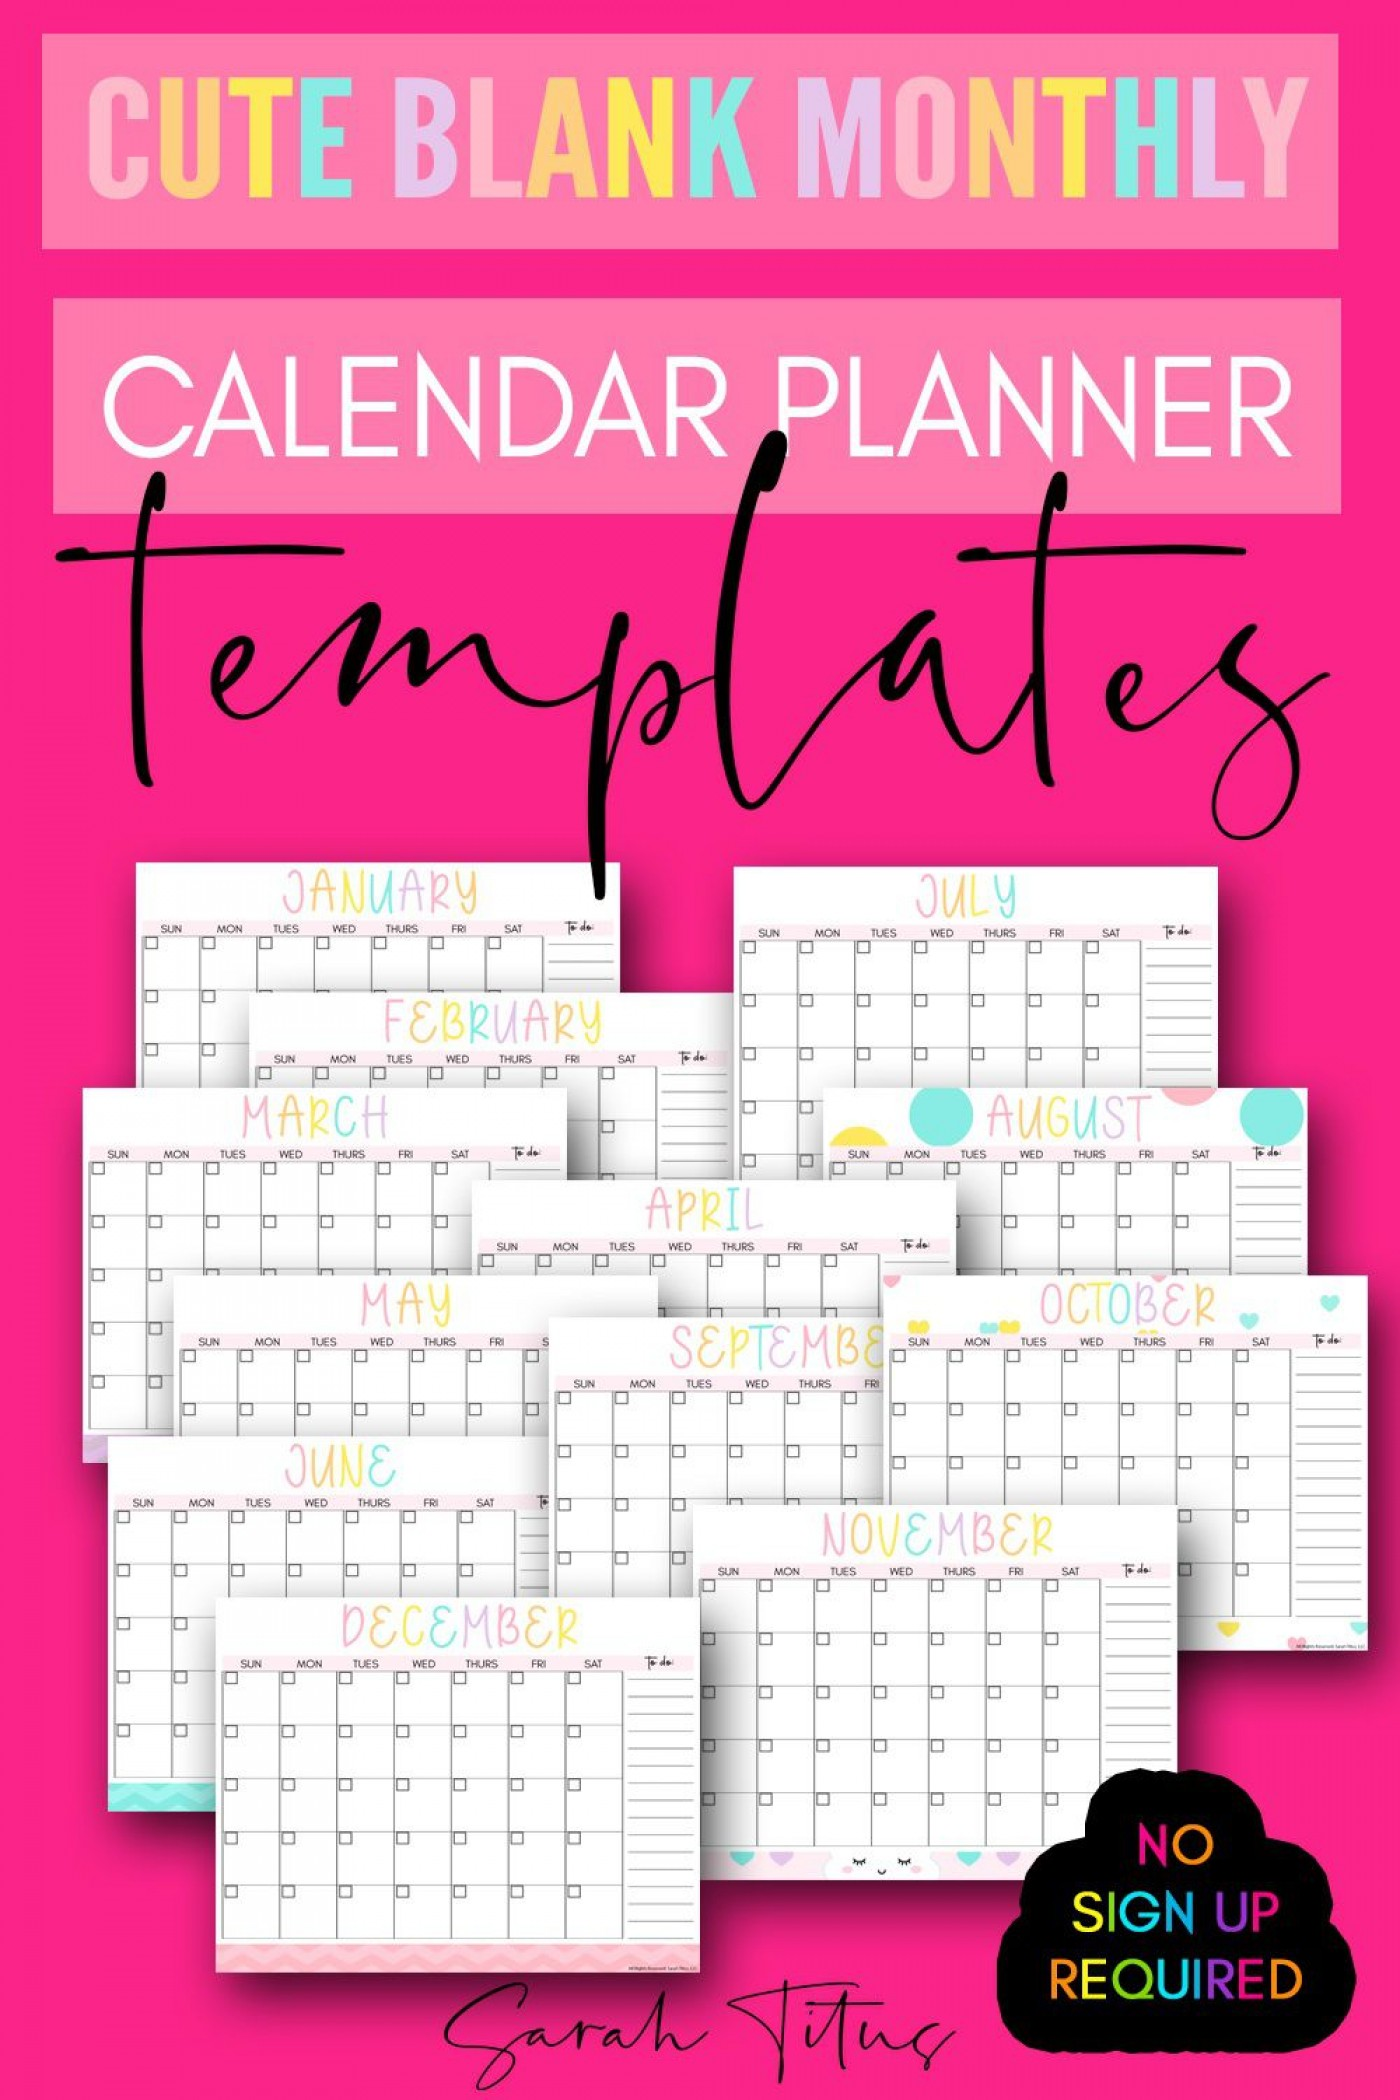 008 Remarkable Free Printable Blank Monthly Calendar Template Picture 1400